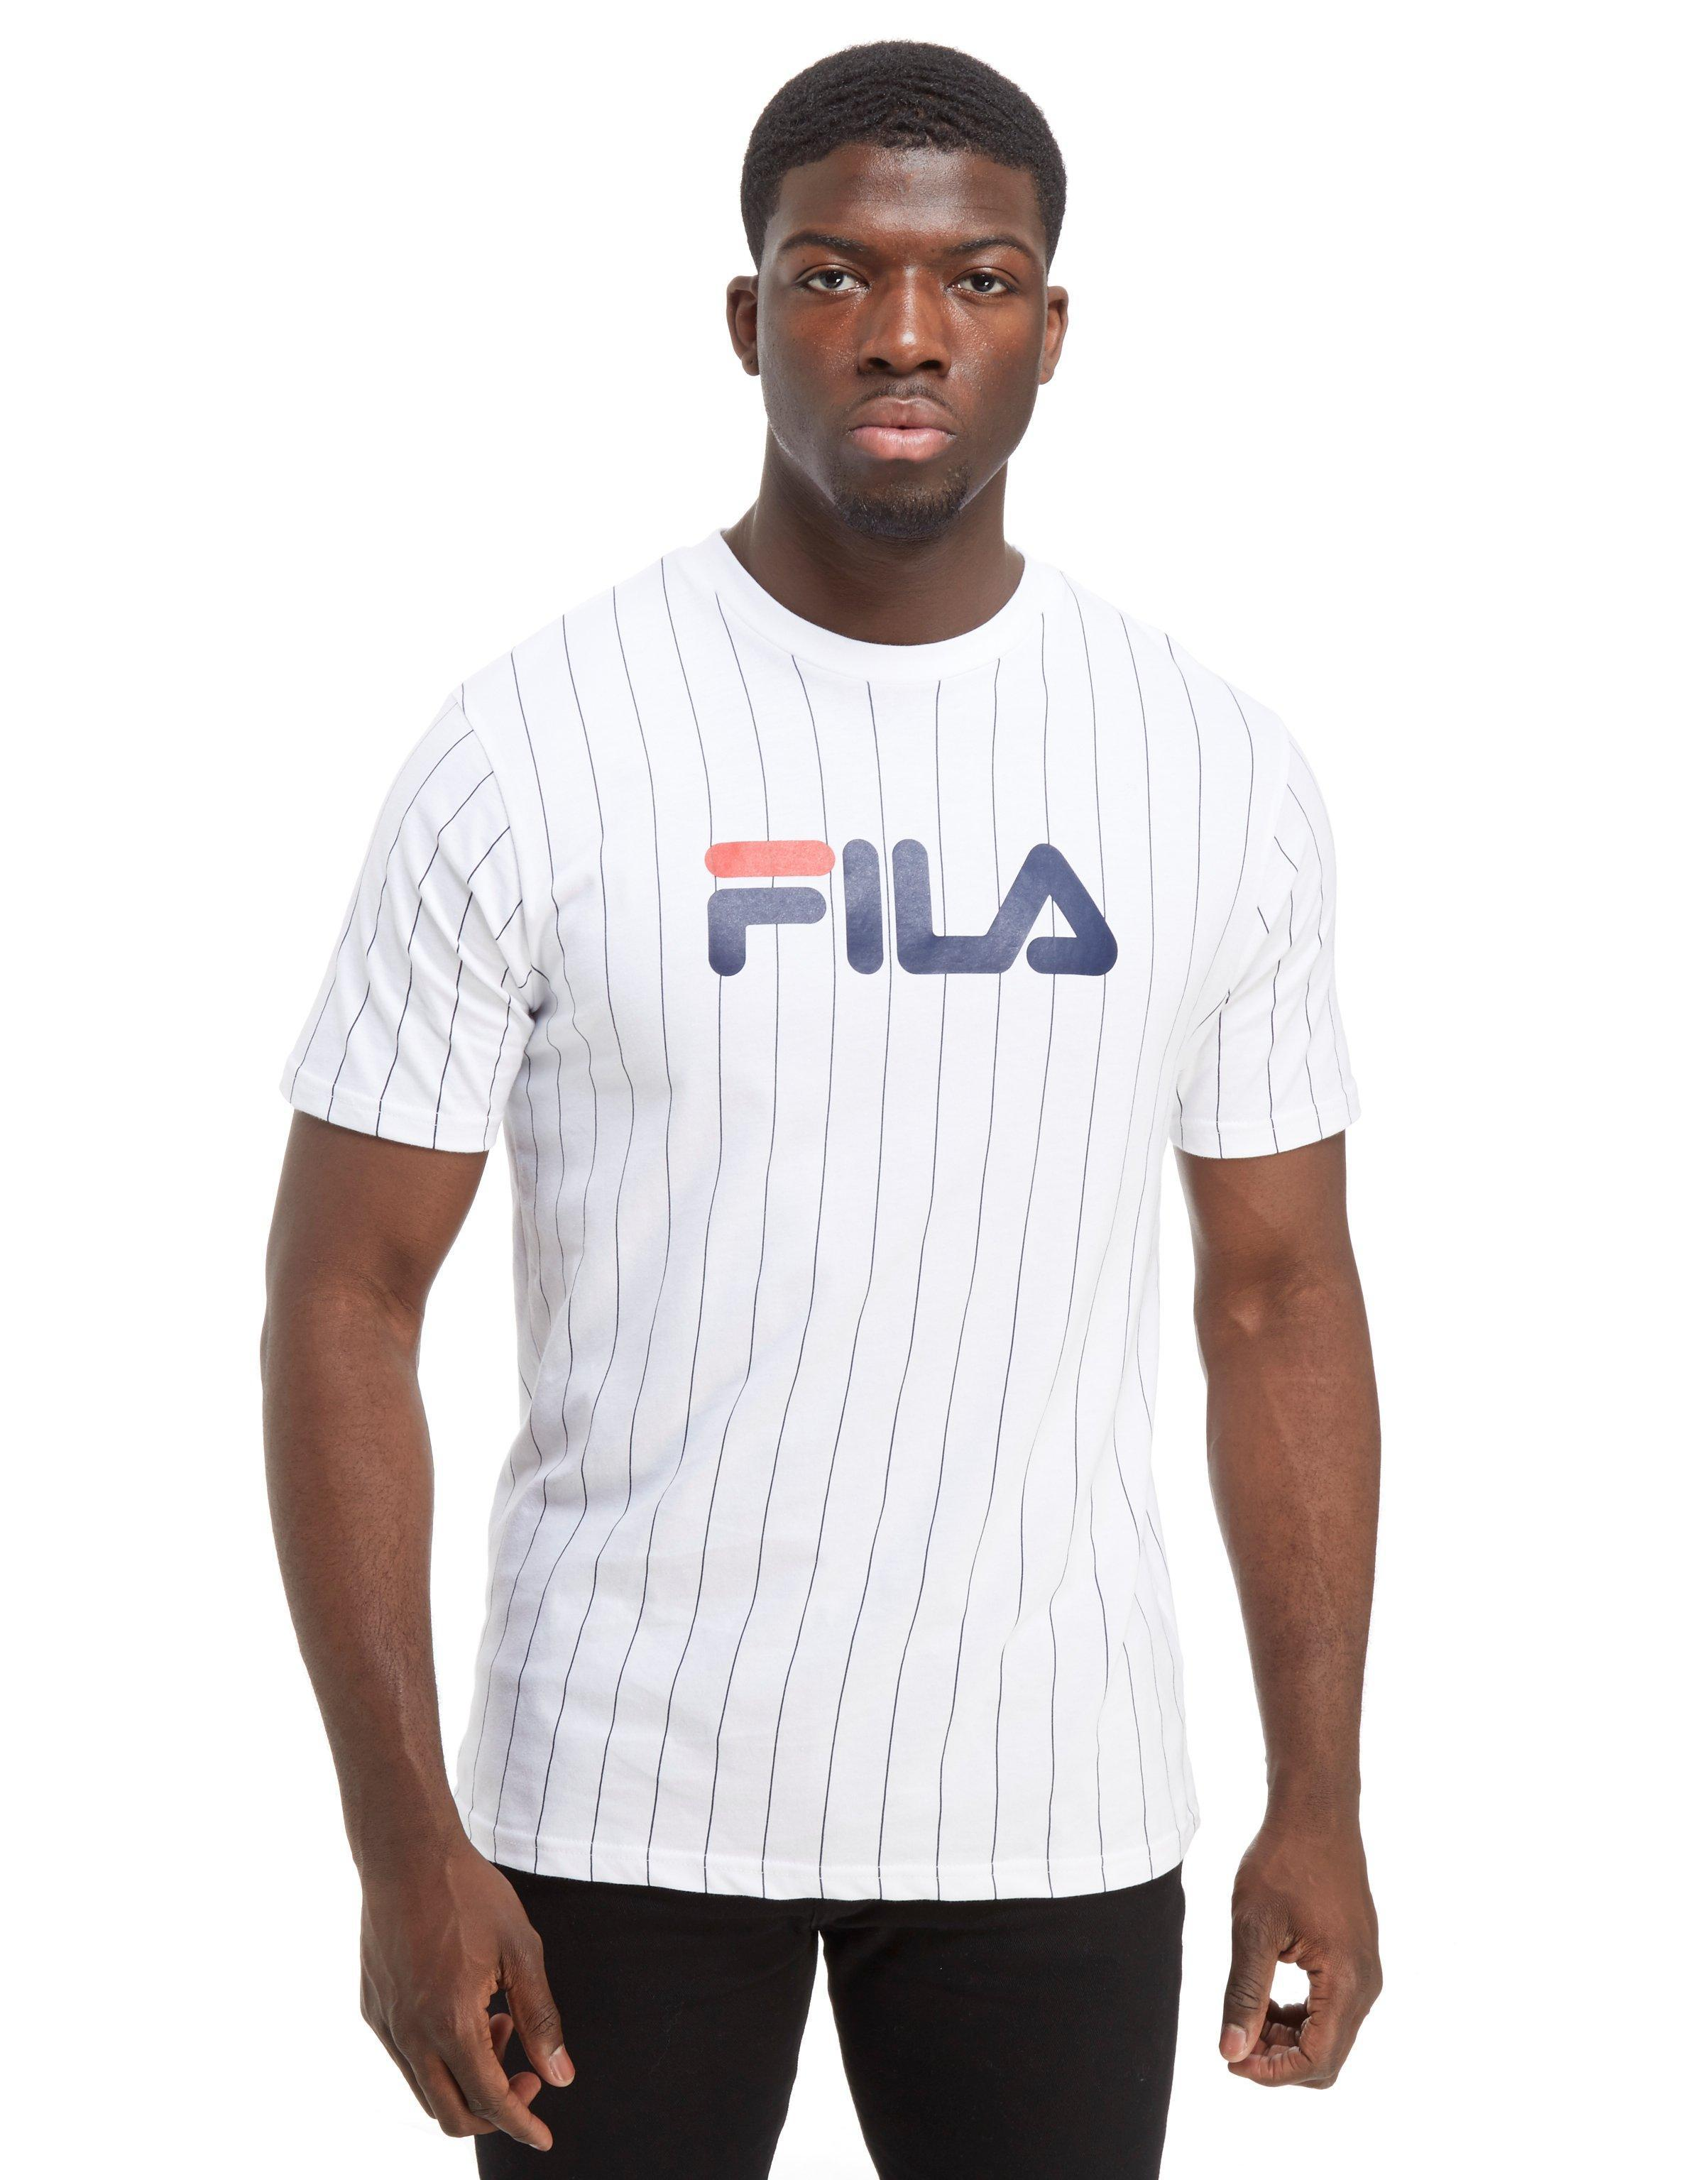 Gregor Stripe For Men Lyst Fila T Shirt In White zMVjLSUpGq